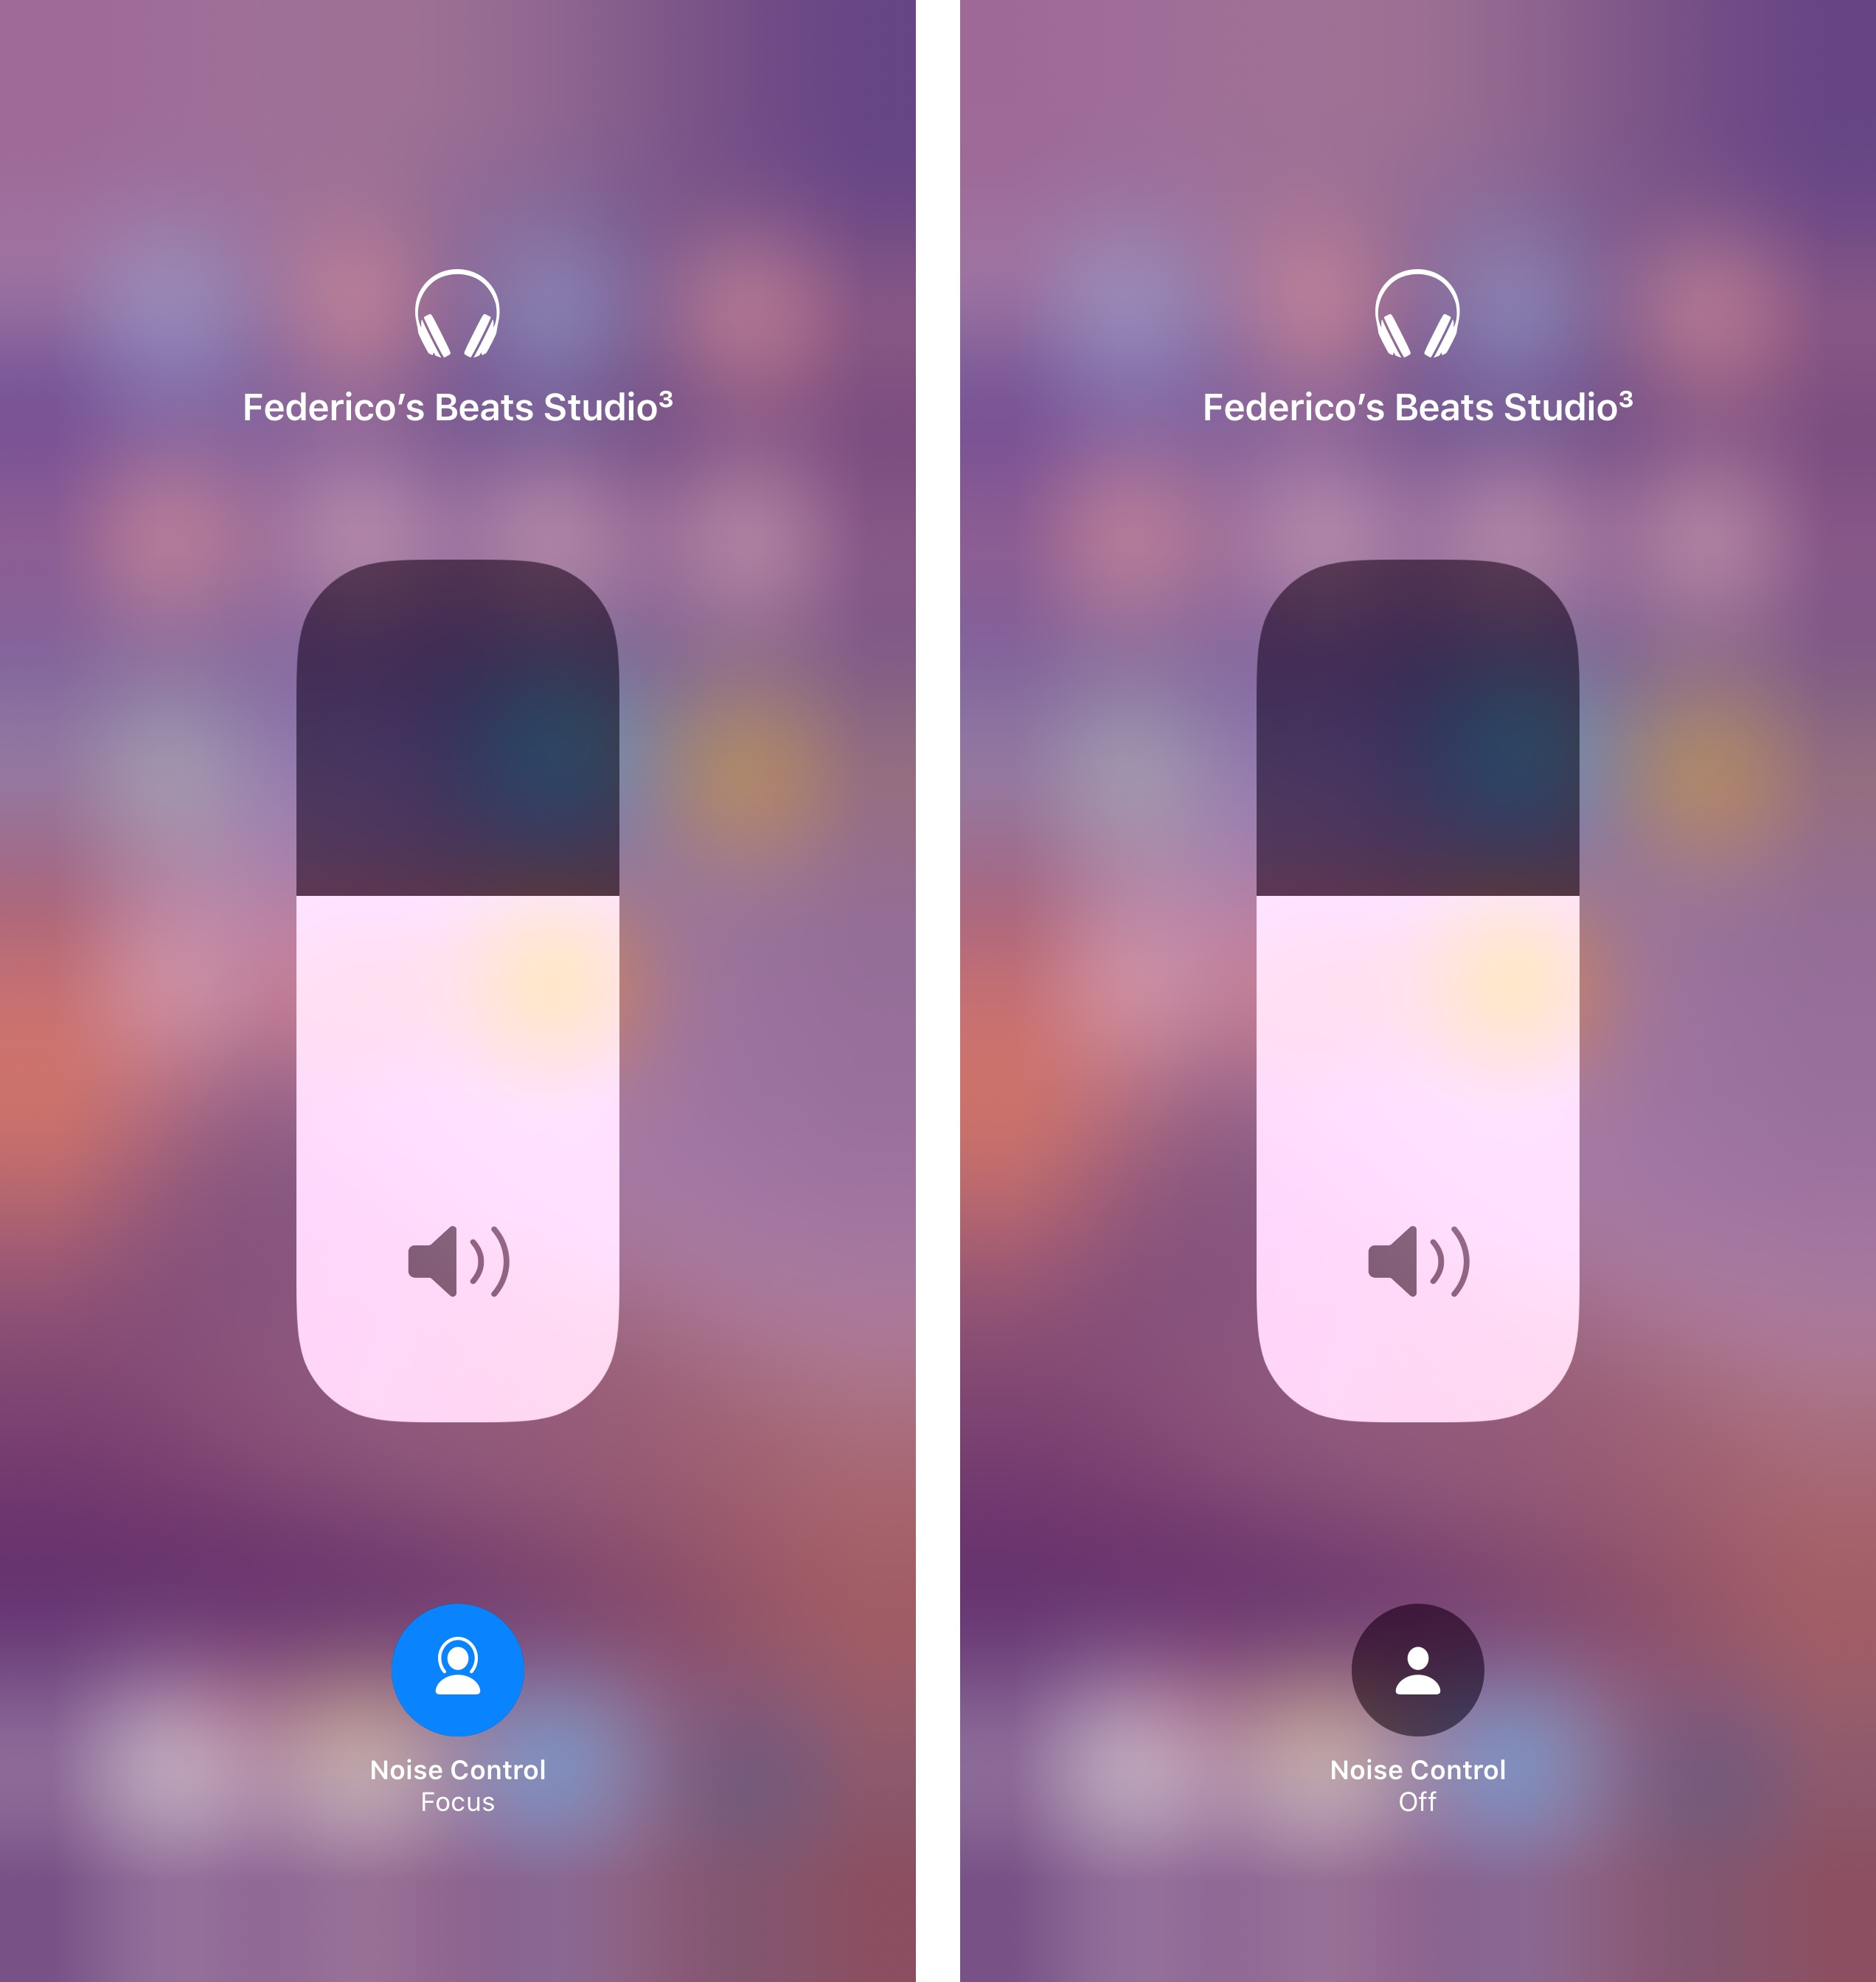 You can toggle noise cancellation for Beats headphones in iOS 13. The icon is different between iOS 13 and iOS 13.1. (iOS 13.1 version pictured above.)